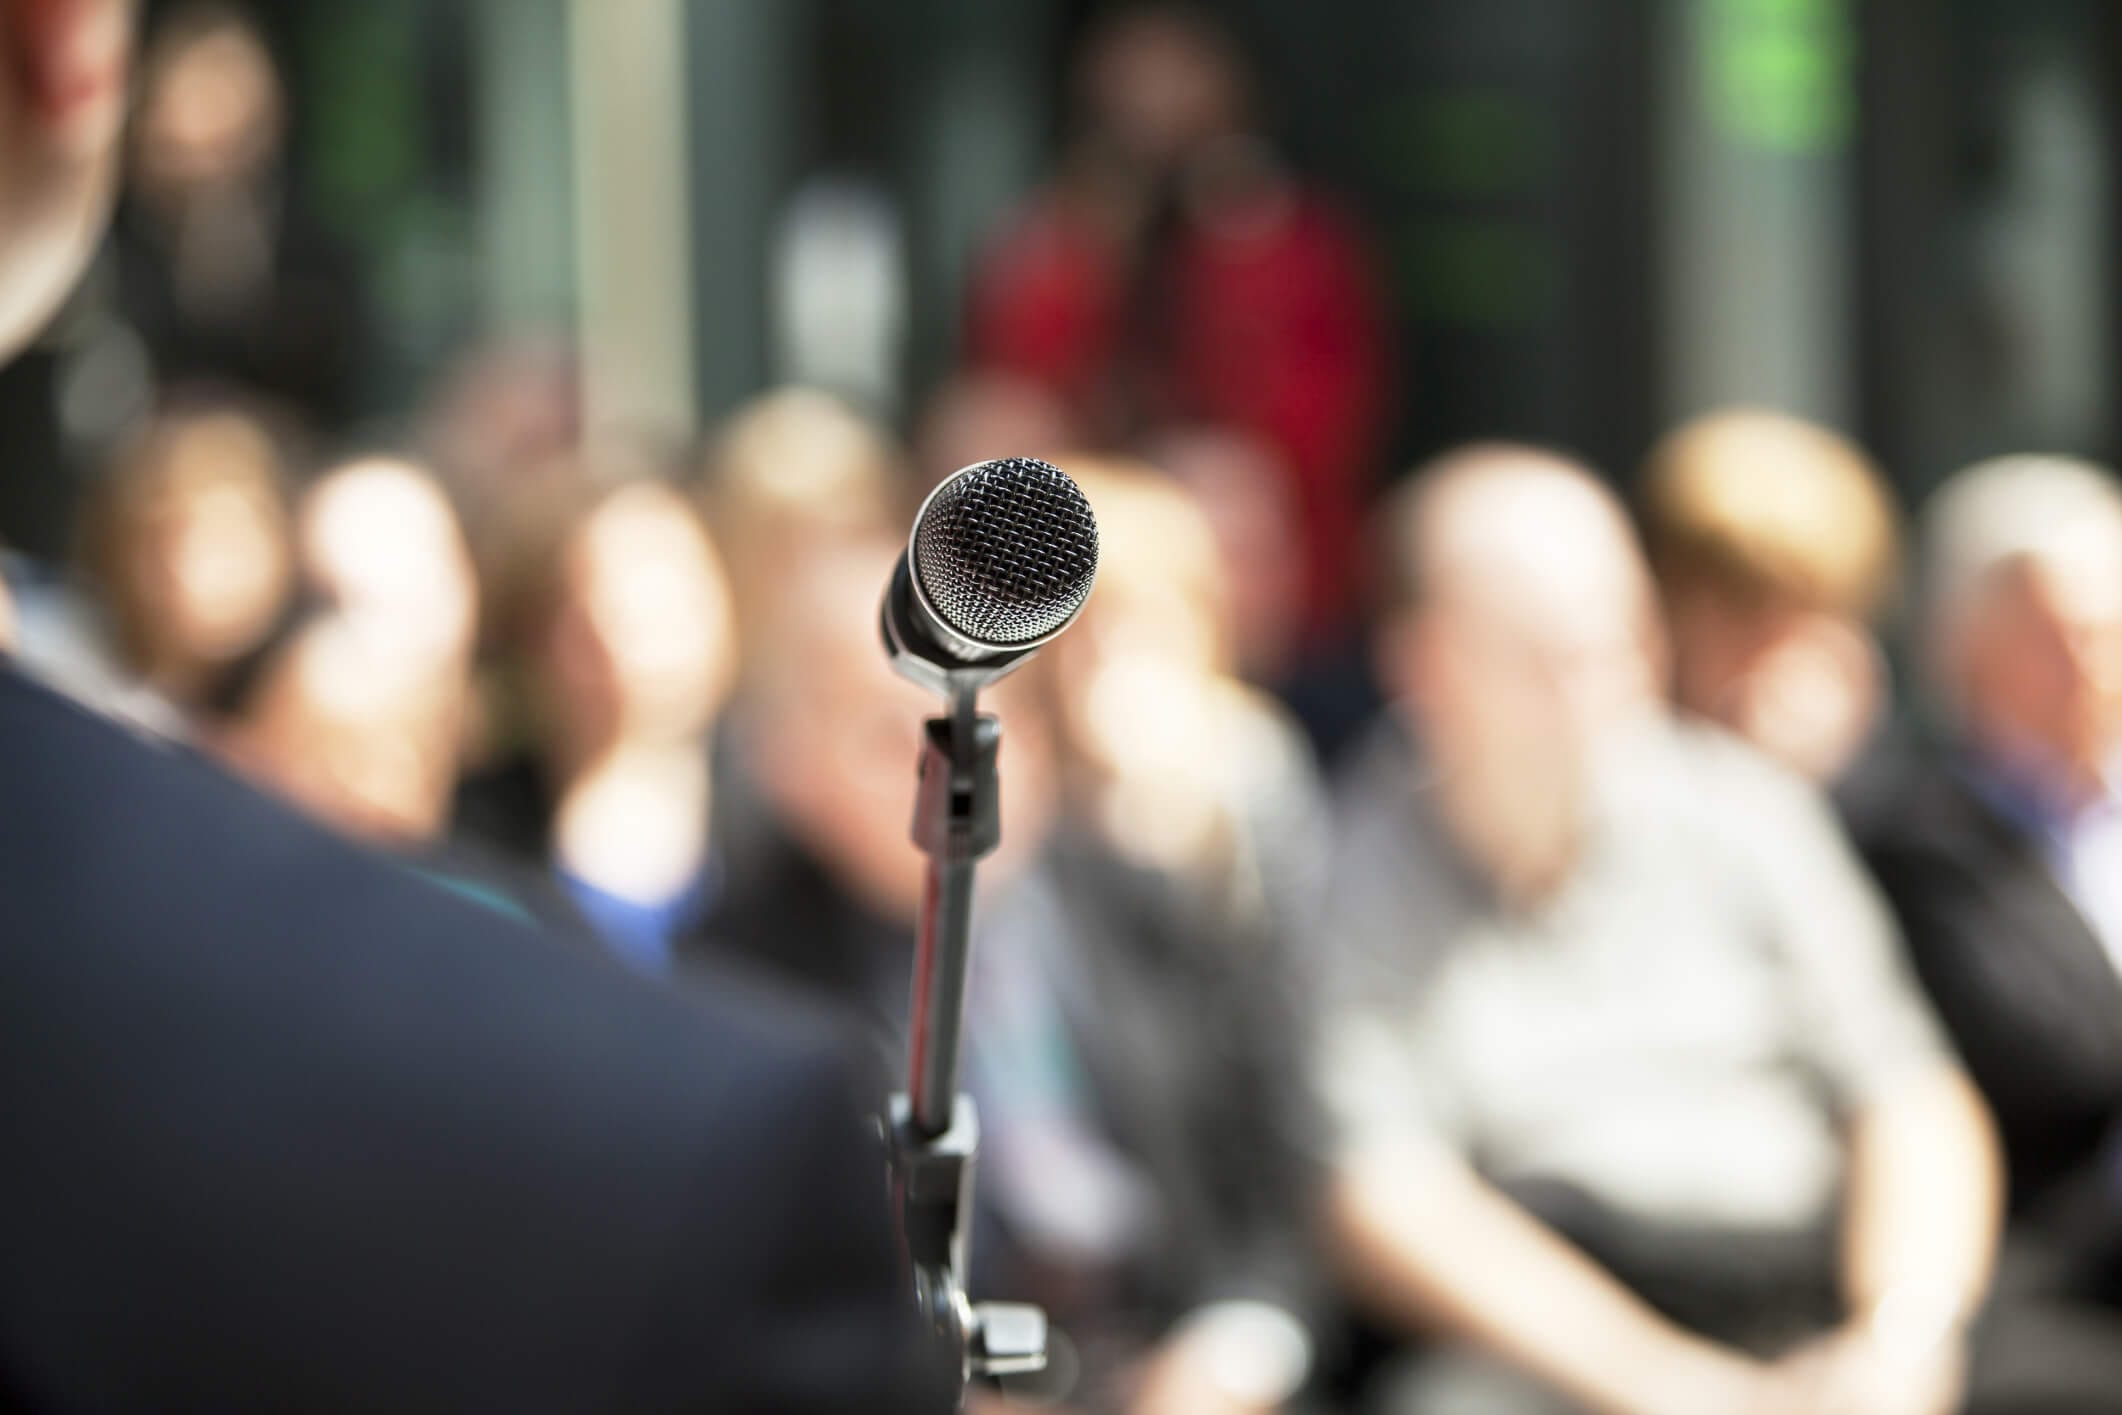 Win the Pitch with These PowerPoint Presentation Tips